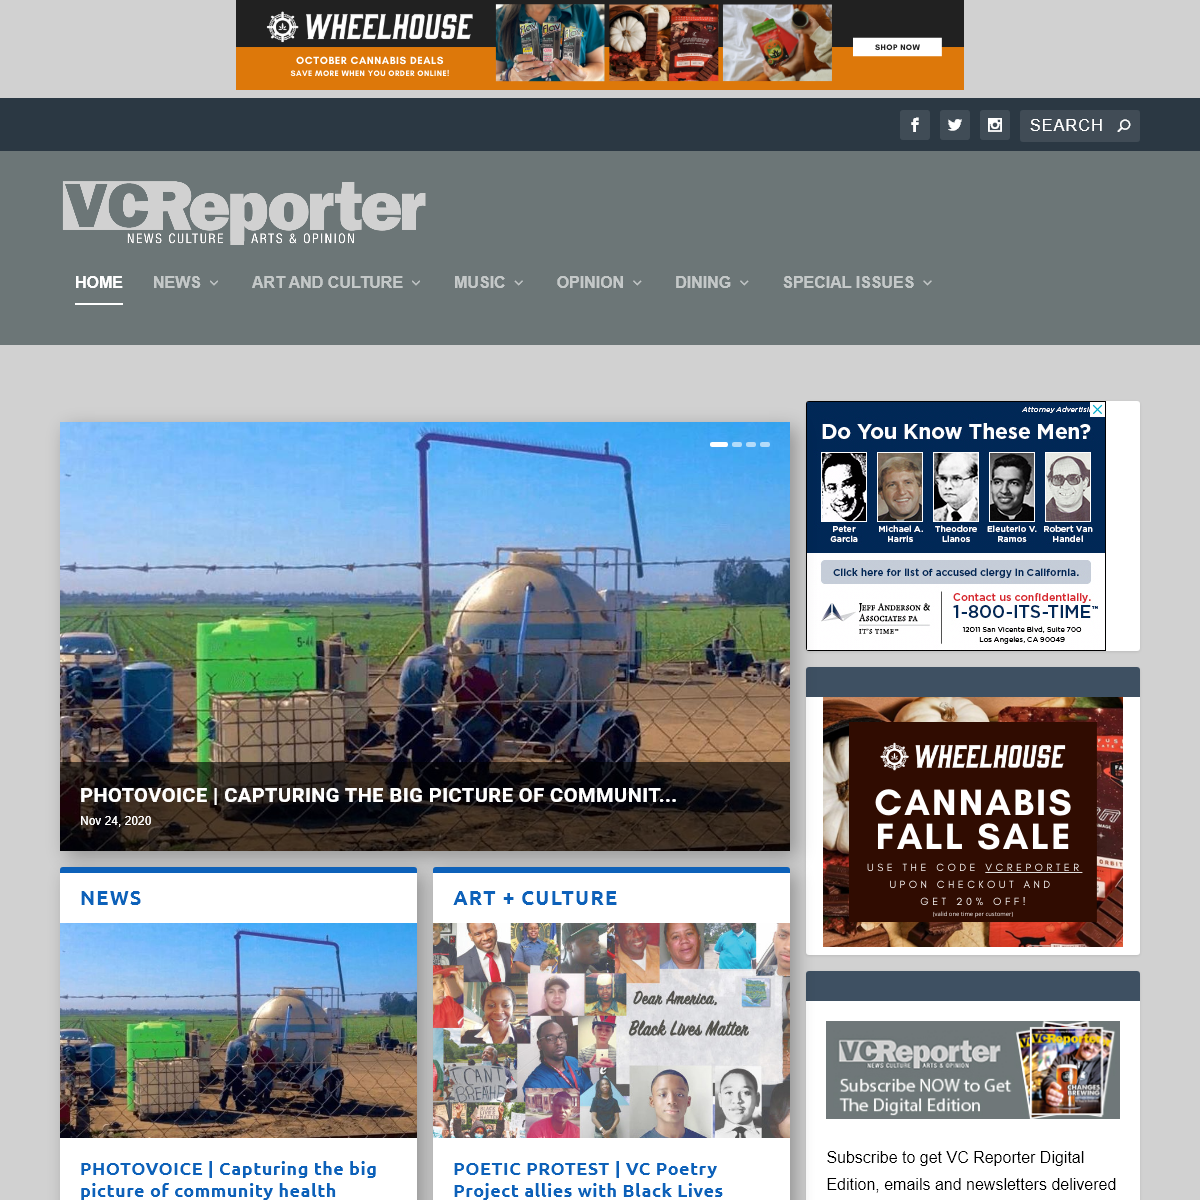 VC Reporter - Times Media Group - News, Culture, Arts and Opinion